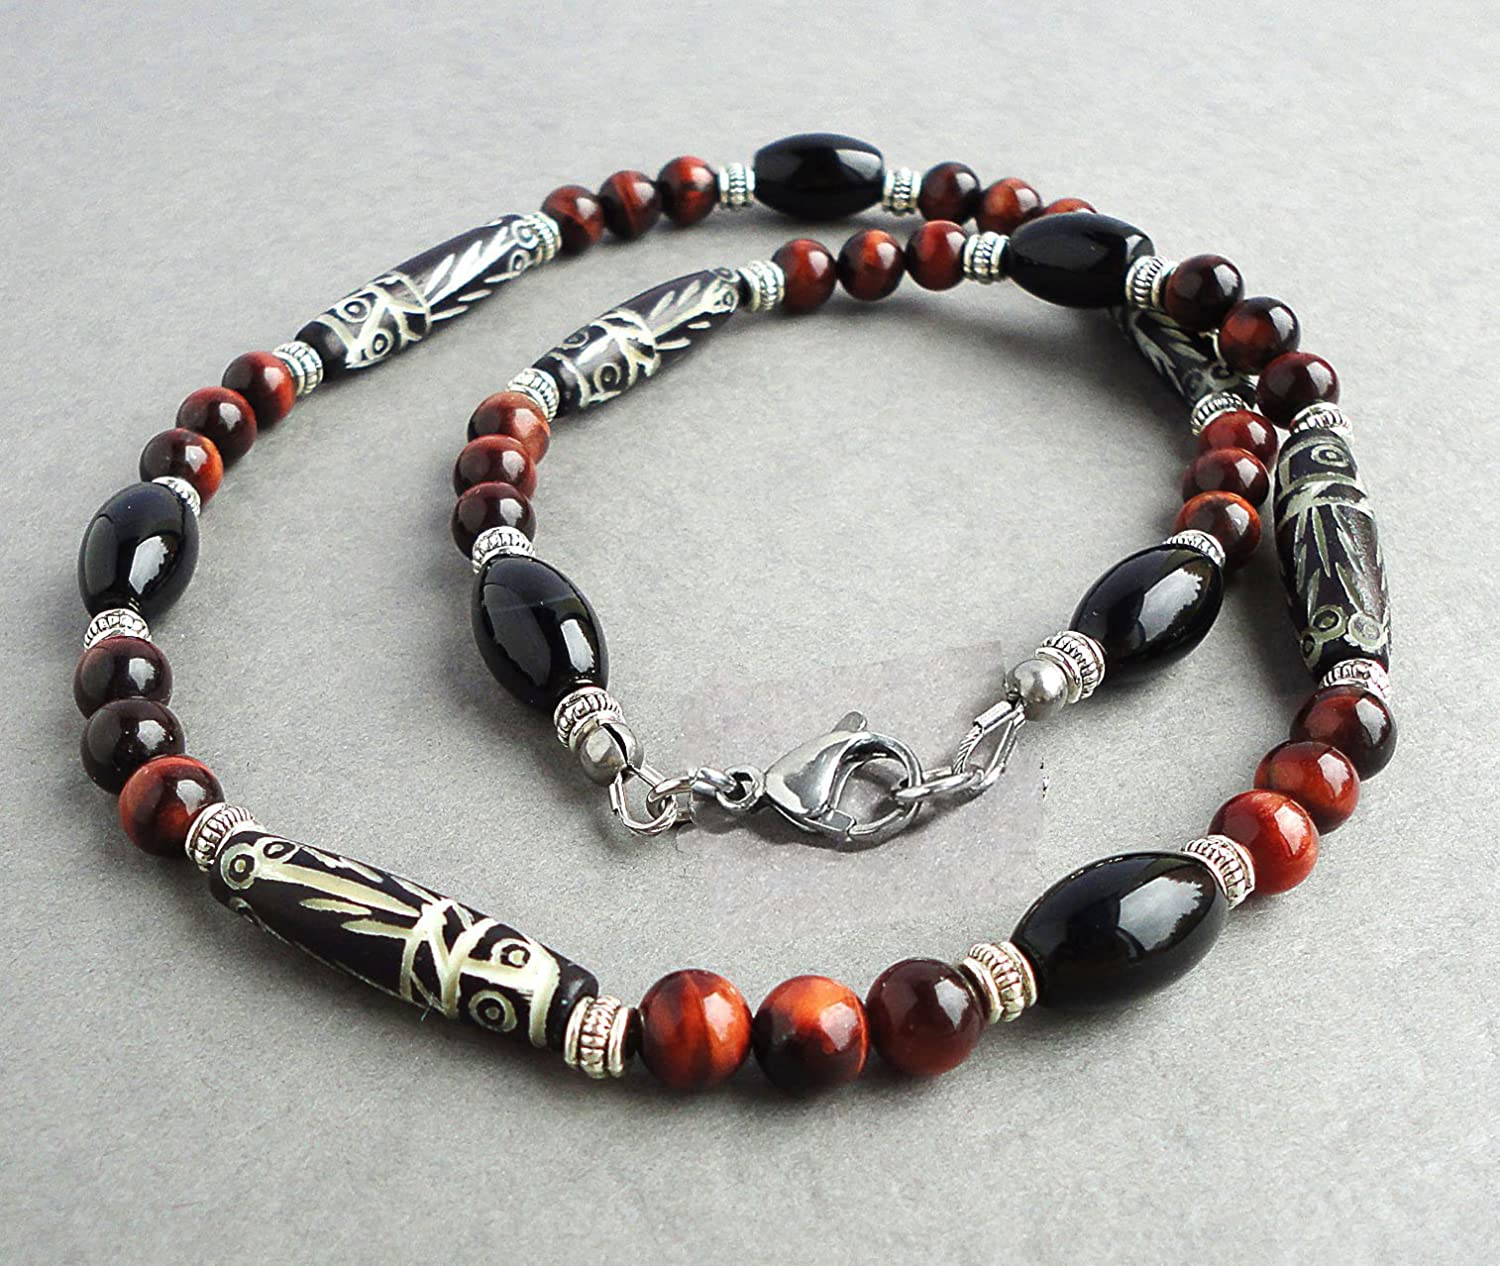 Mens Tribal Style Necklace - Carved Bone, Black Onyx, Red Tiger Eye Gemstone Beaded, Handcrafted